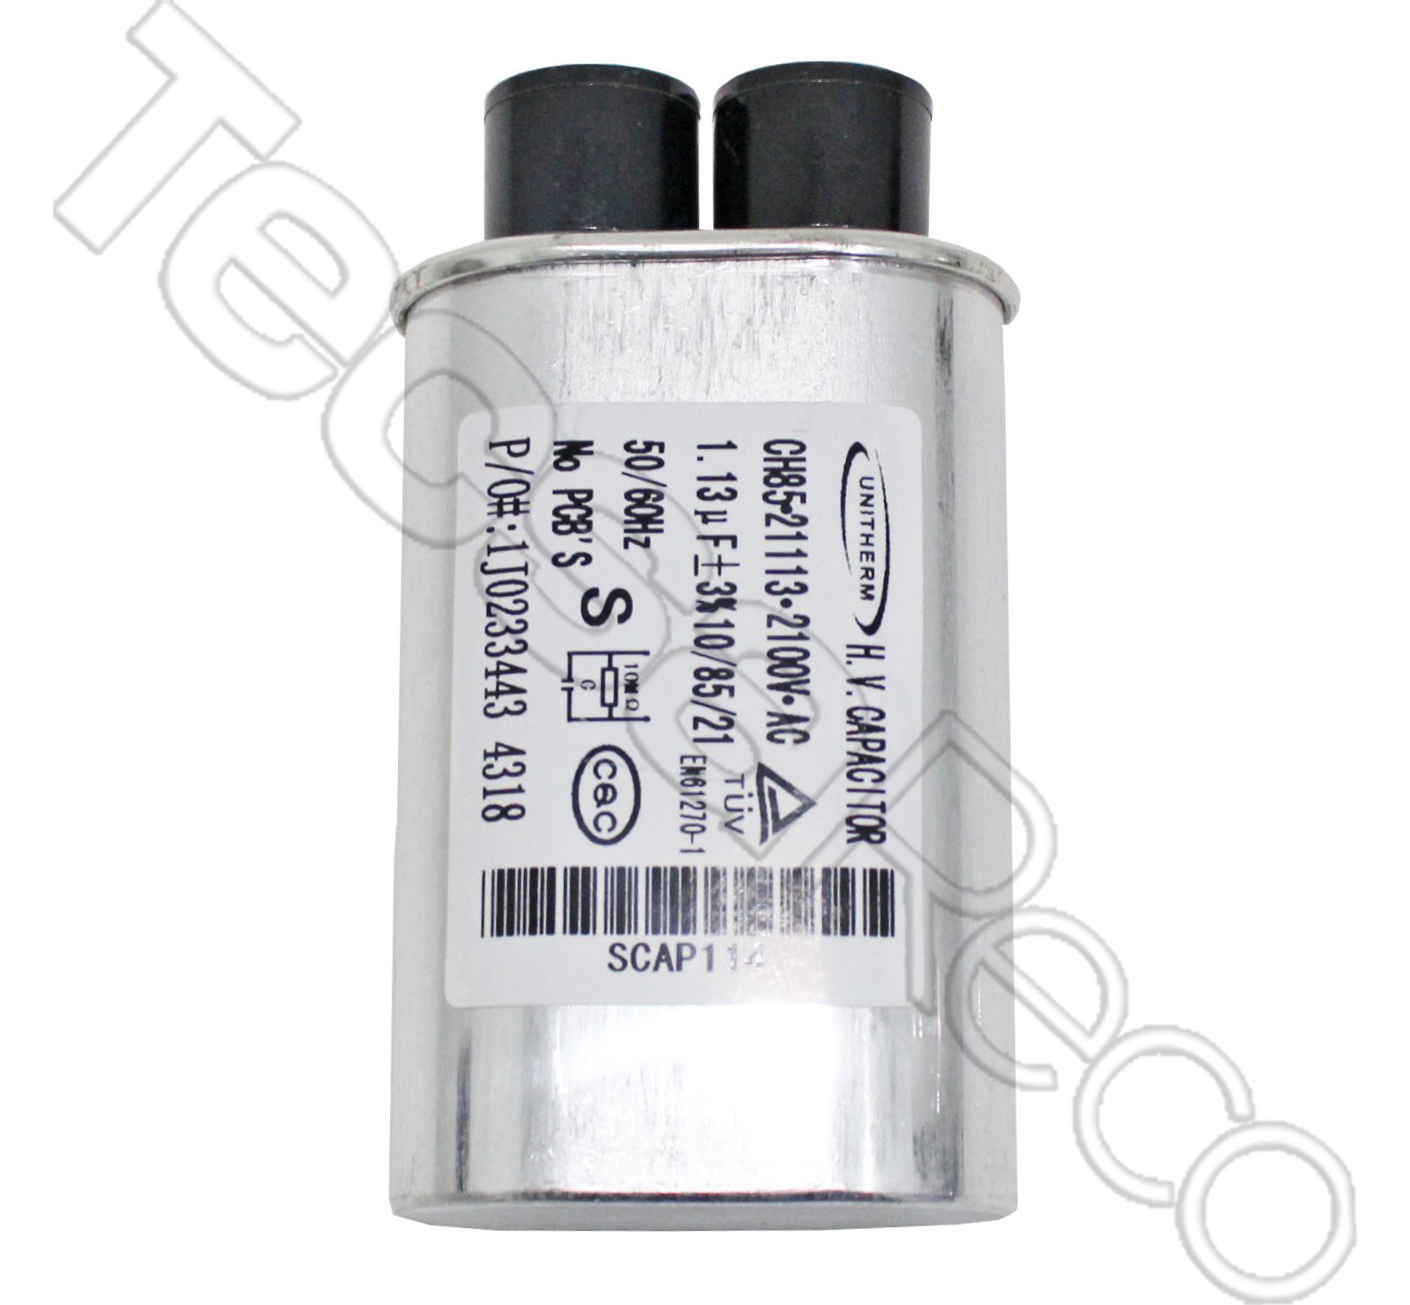 High Voltage Capacitor 1.13Mfd - 2100V